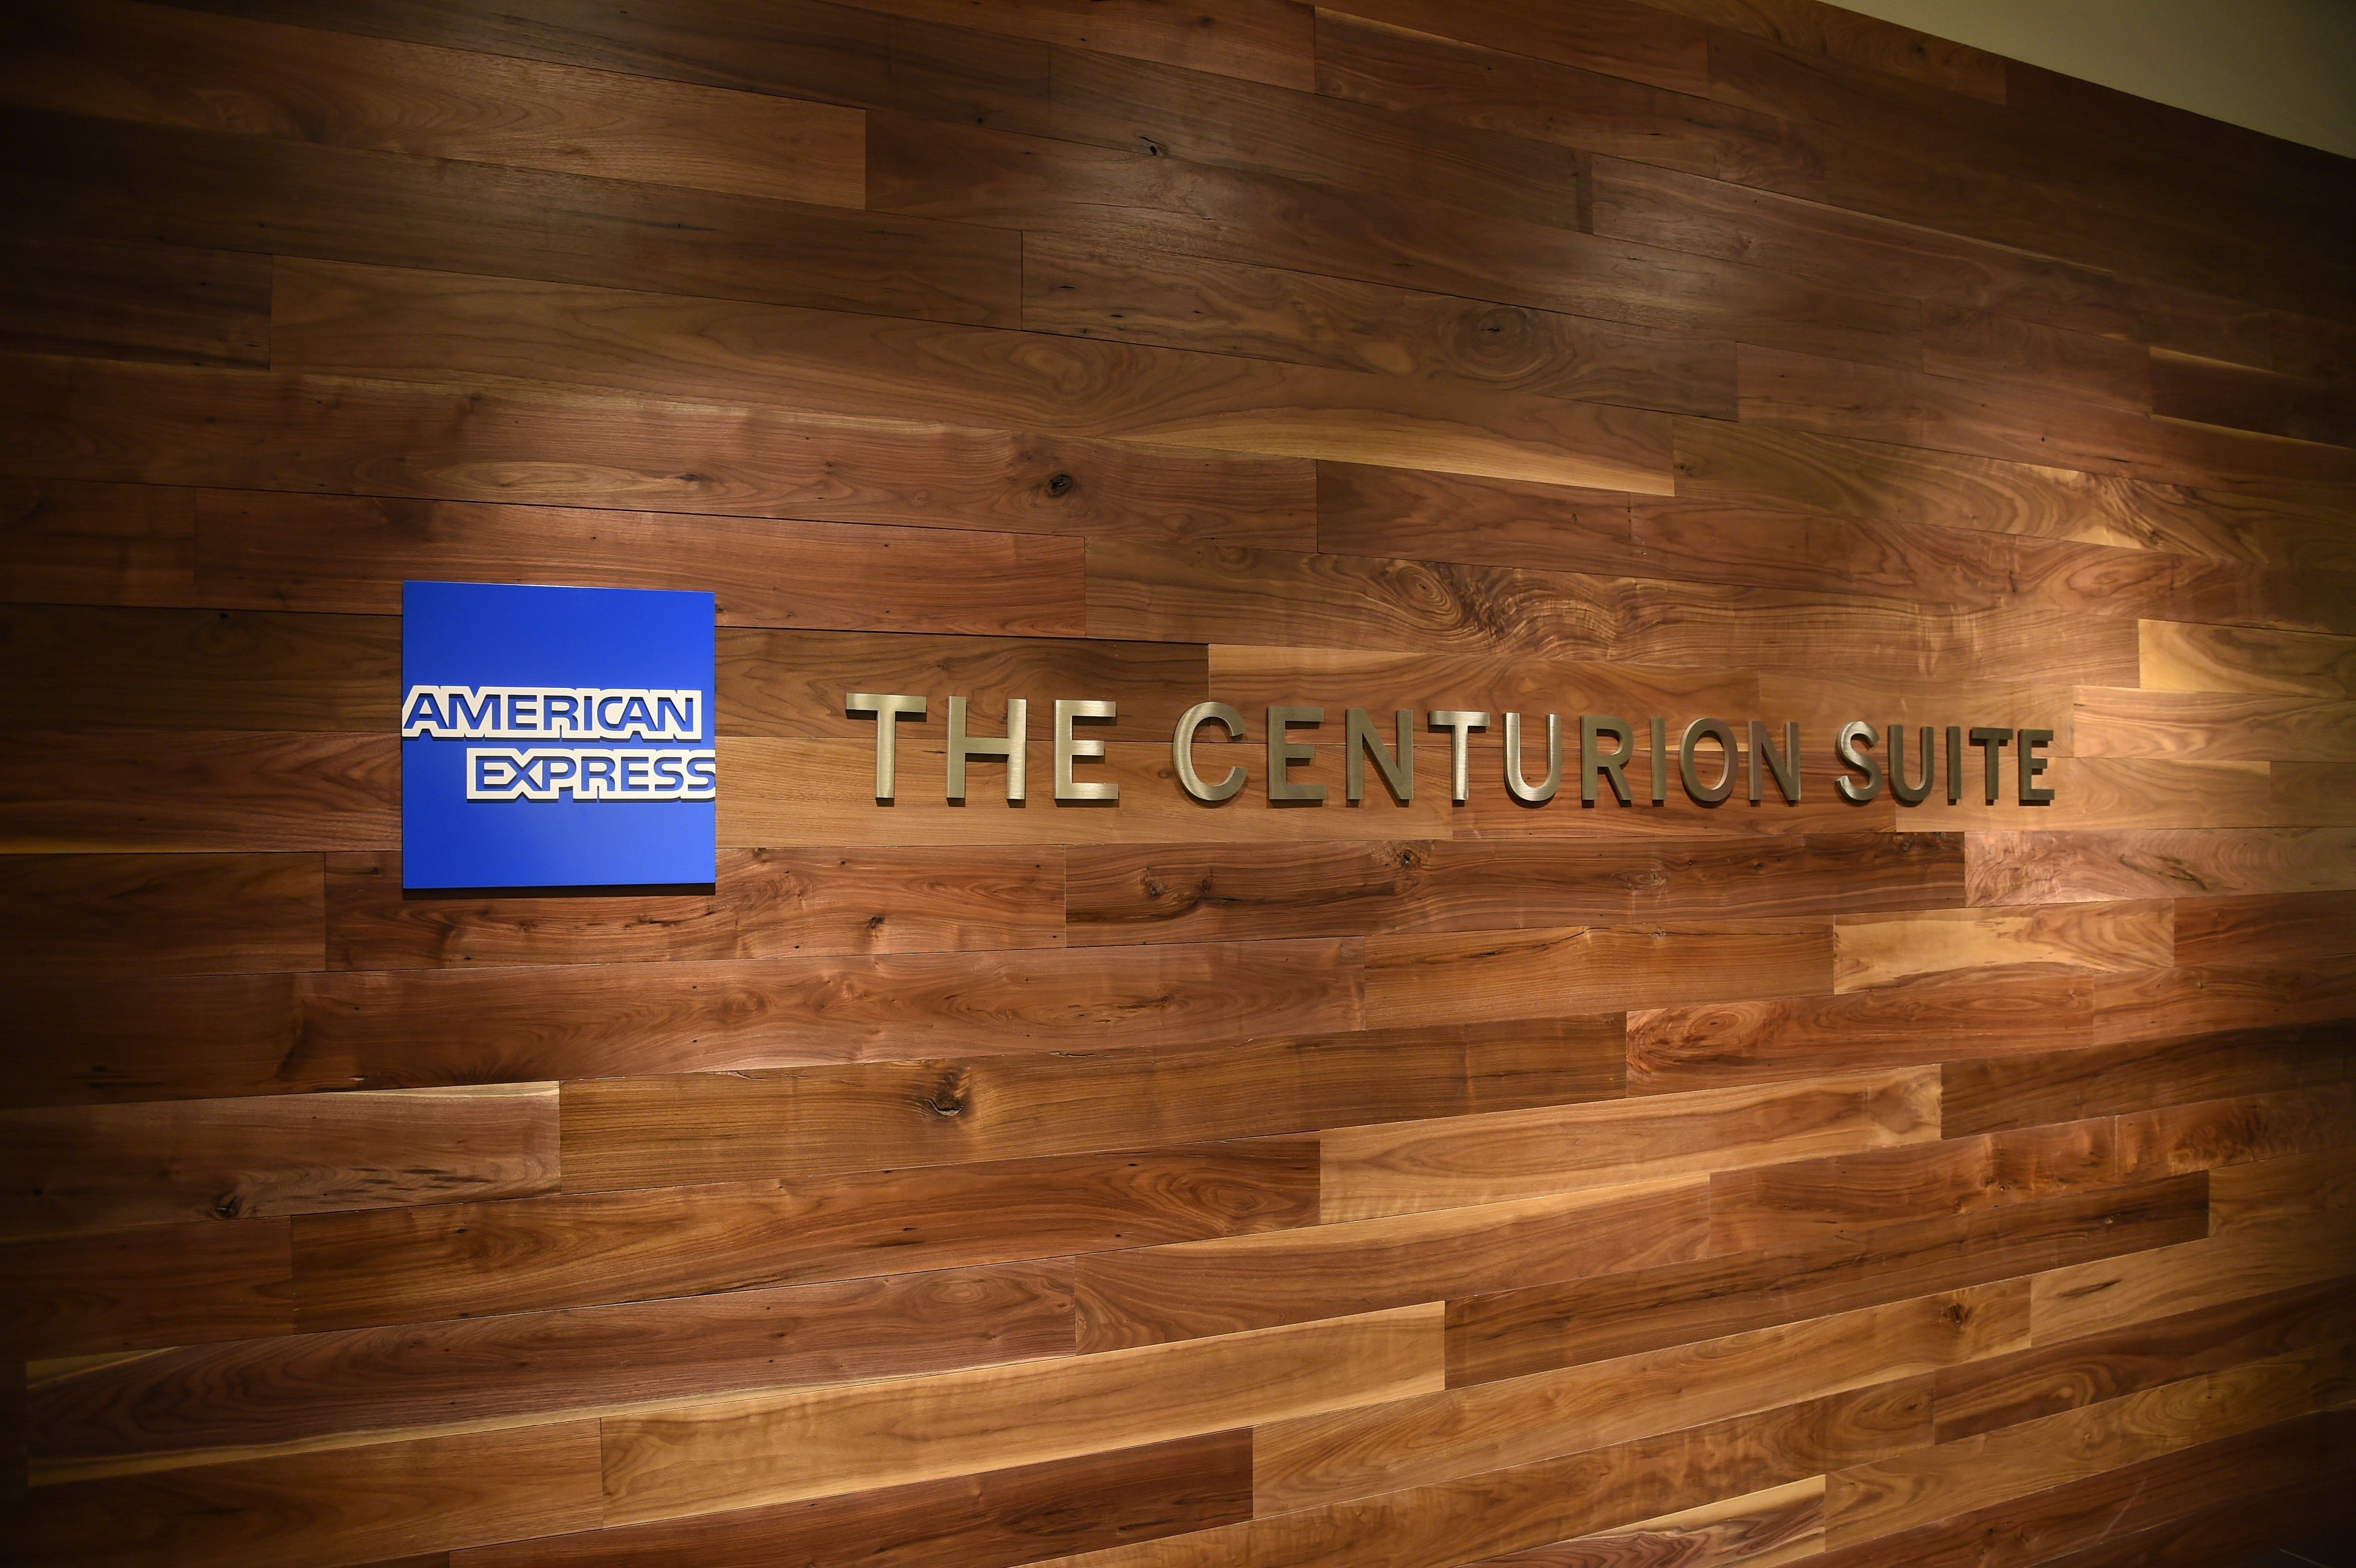 American Express Launches The Centurion Suite At Barclays